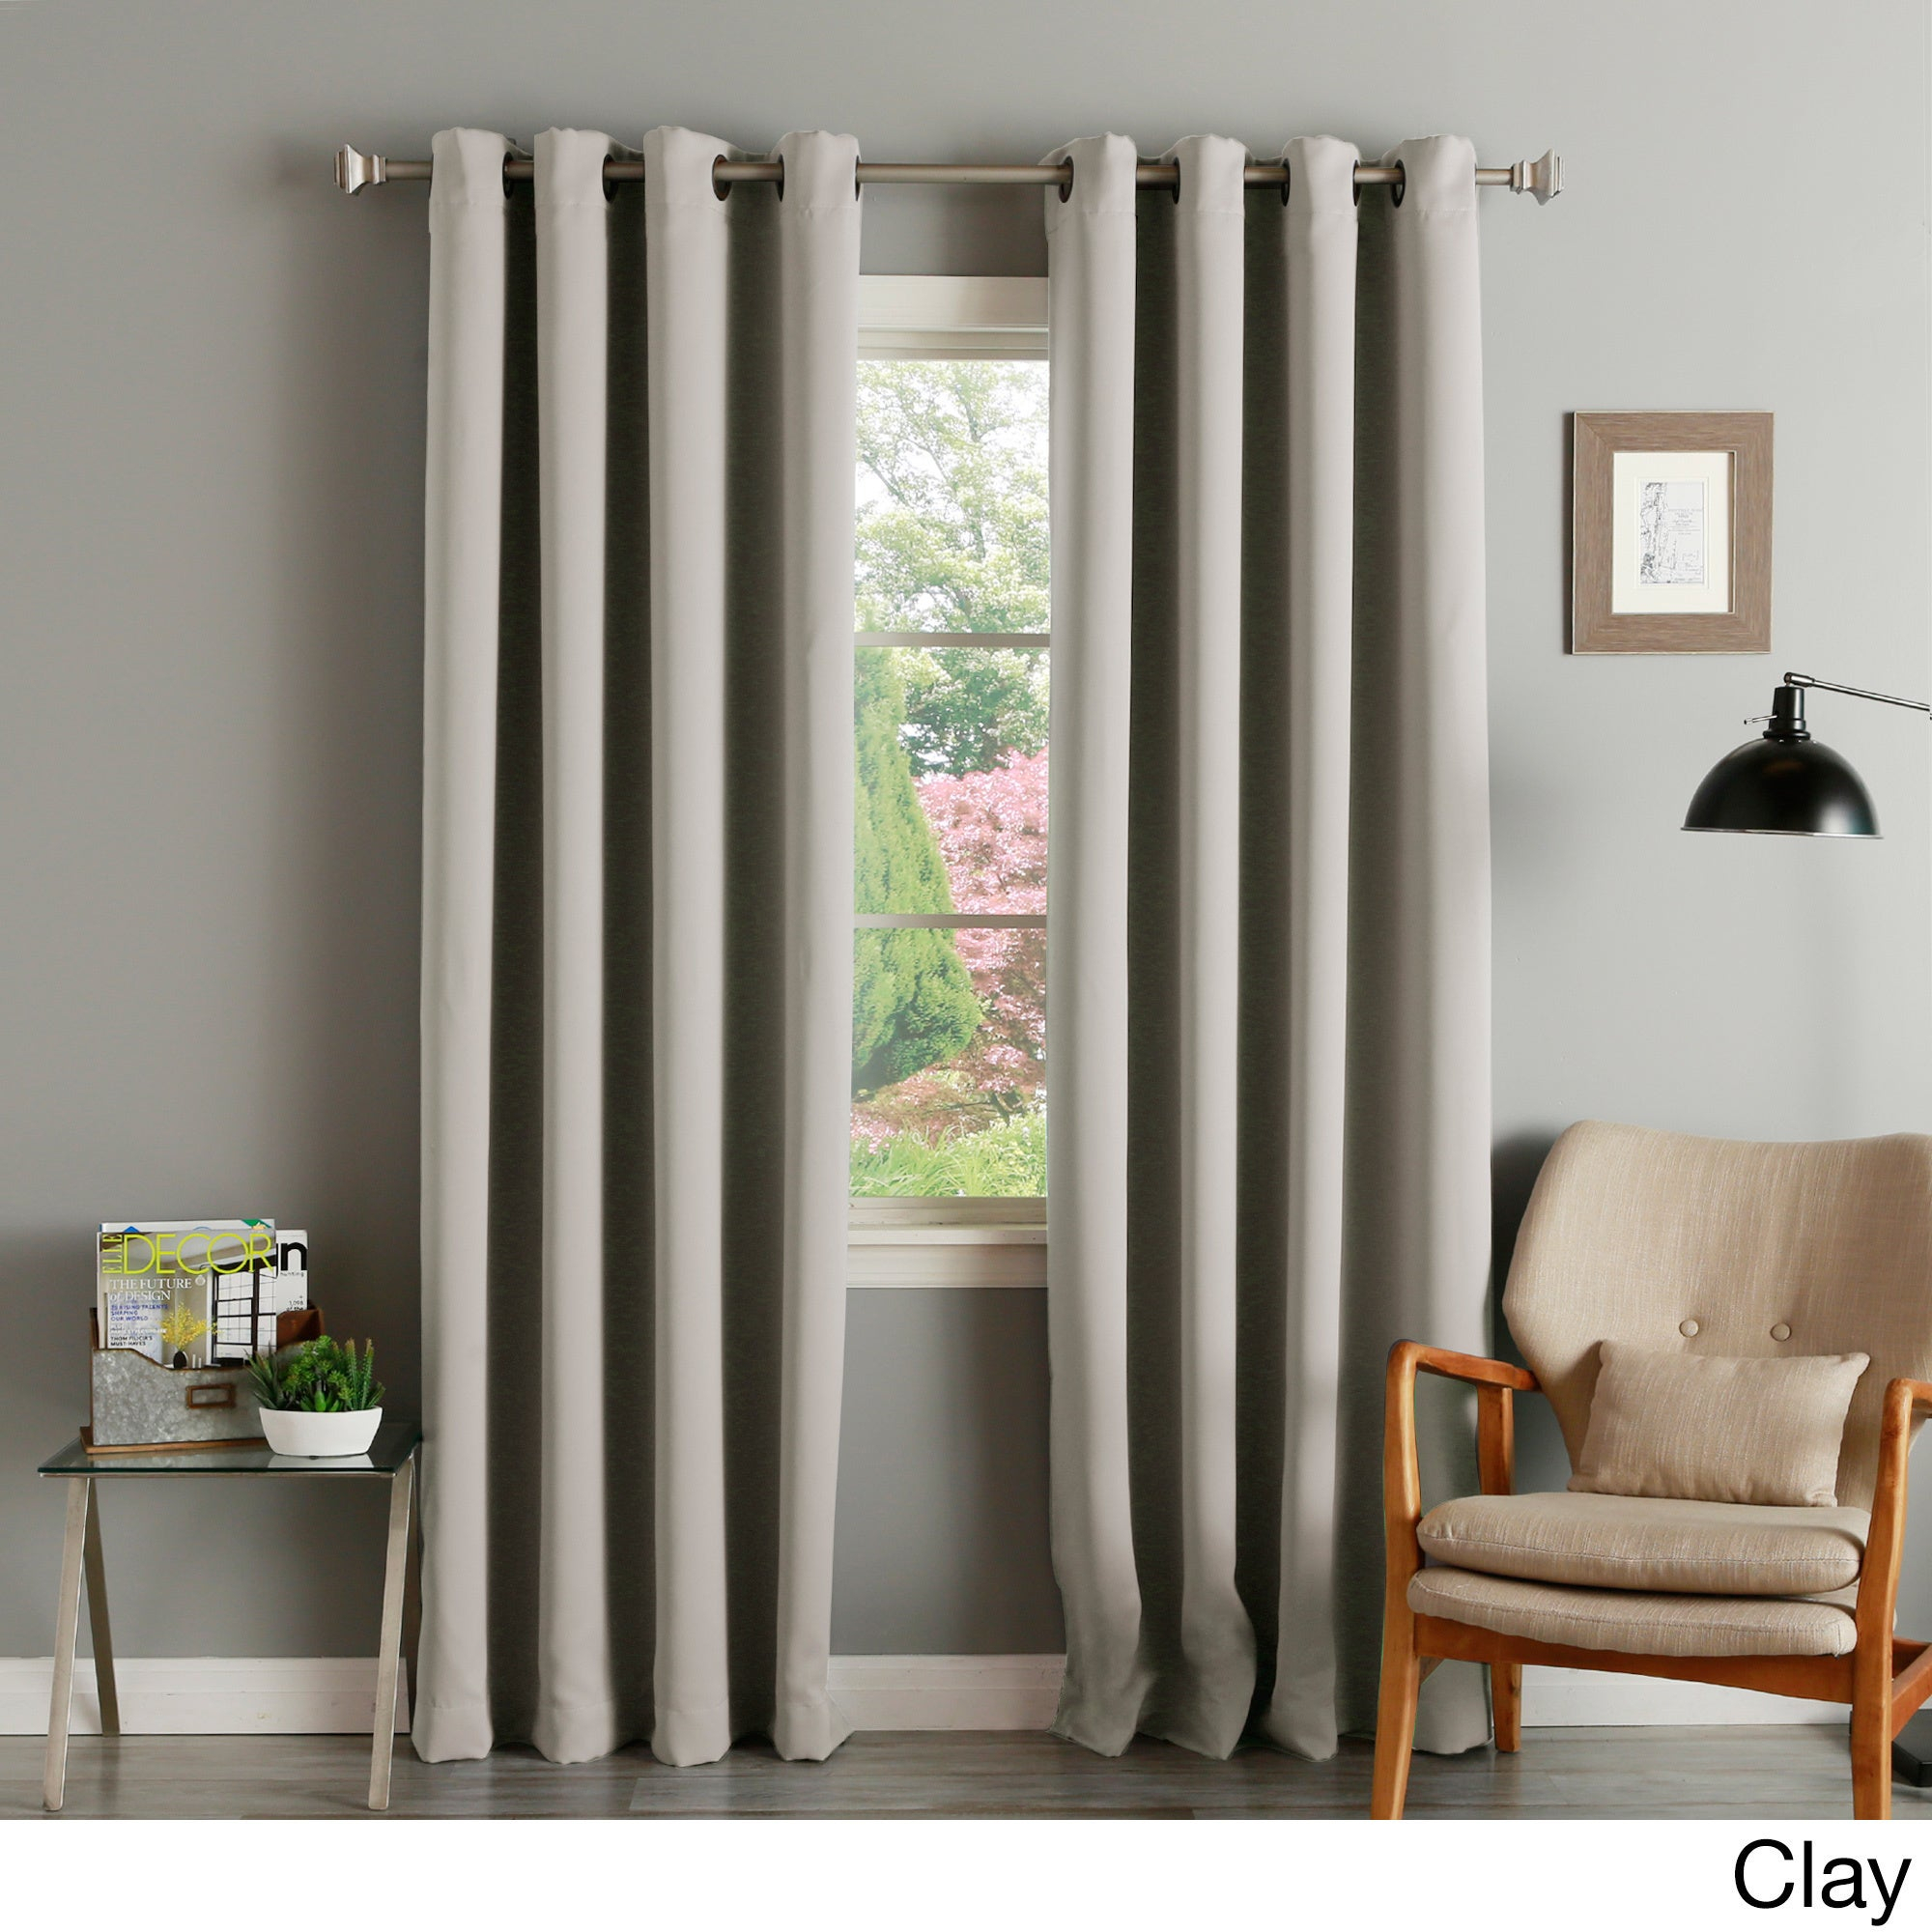 Aurora Home Thermal Insulated Blackout Grommet Top Curtain Panel Pair Intended For Solid Thermal Insulated Blackout Curtain Panel Pairs (View 5 of 30)